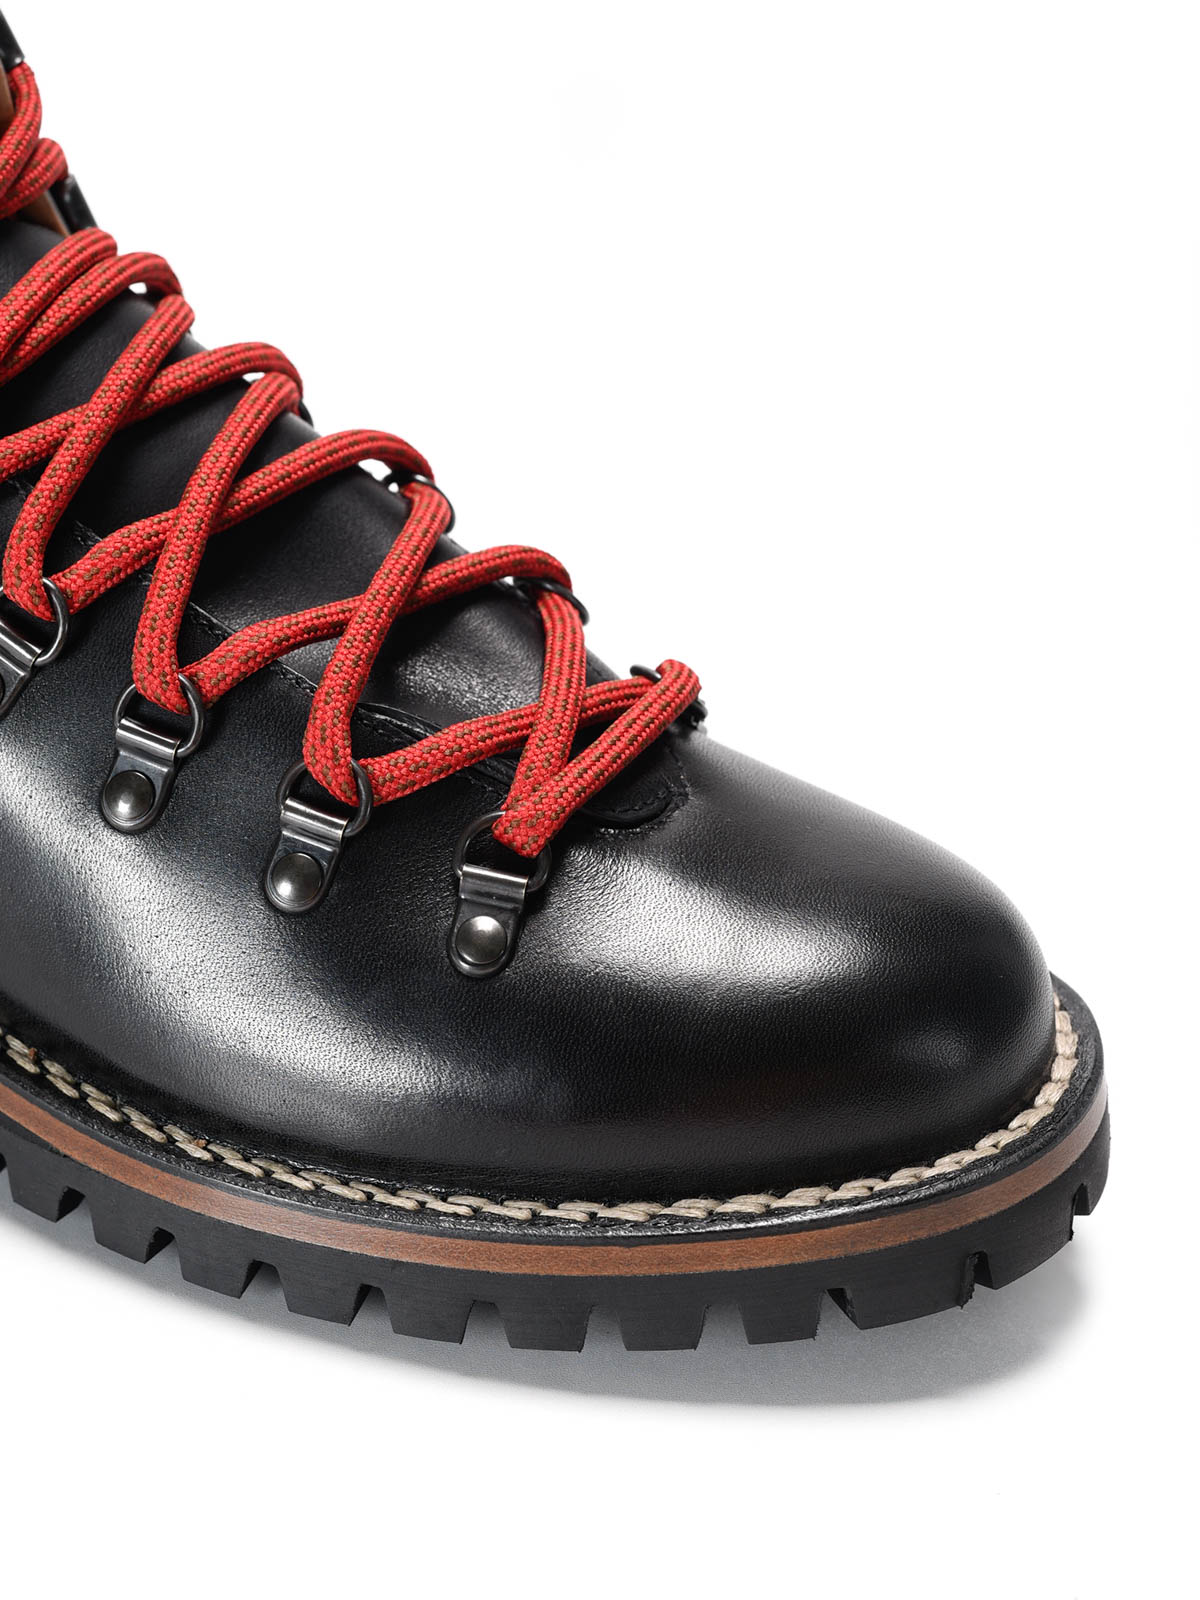 Leather hiking boots by Car Shoe